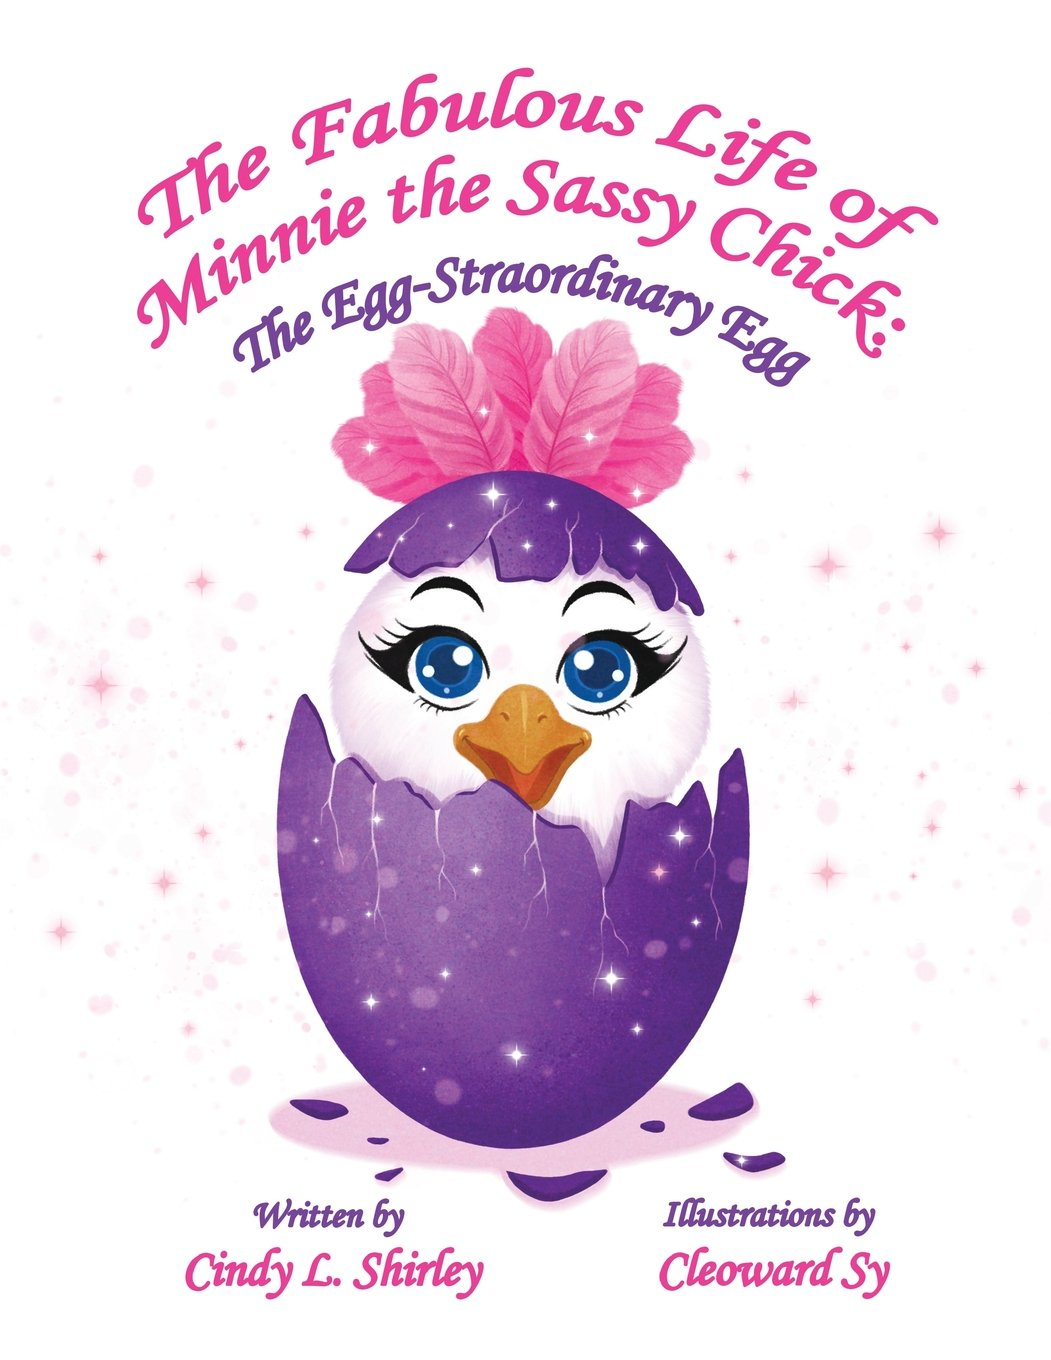 Read Online The Fabulous Life of Minnie the Sassy Chick: The Egg-Straordinary Egg (Volume 1) PDF